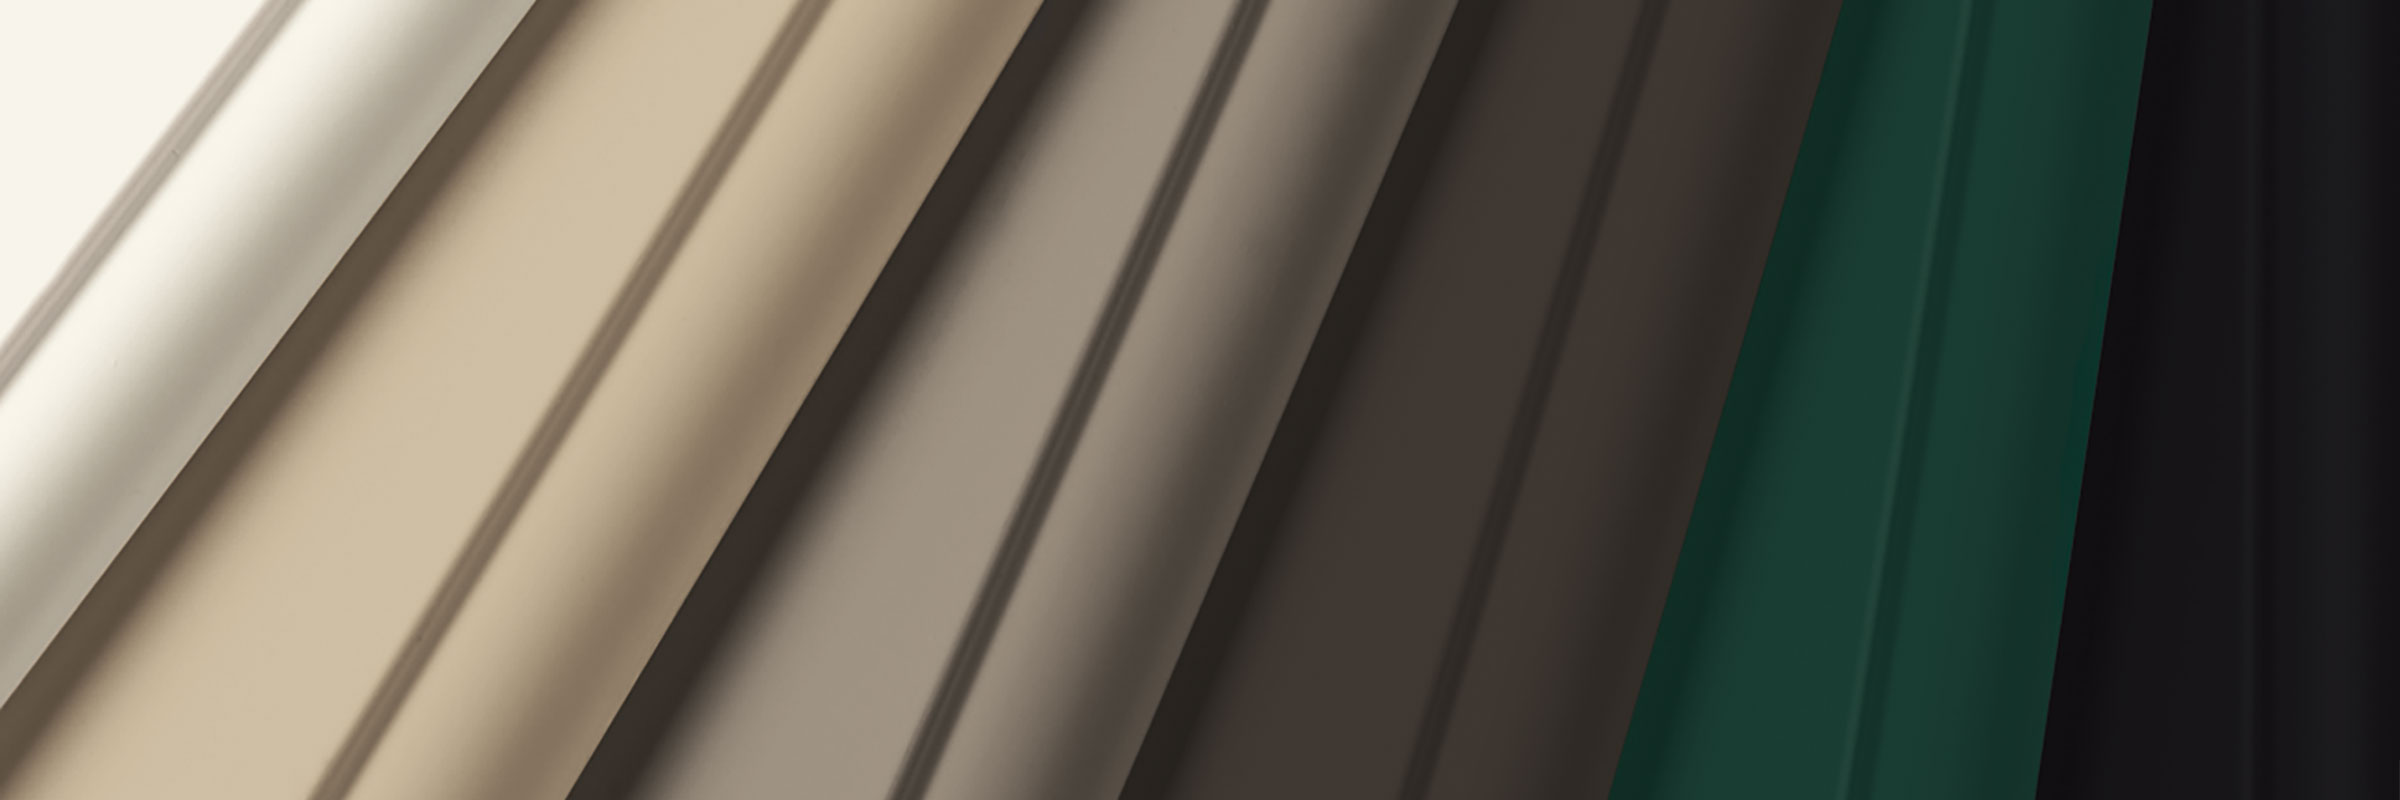 Marvin Materials Elevate And Essential Collection Ultrex Fiberglass Finishes